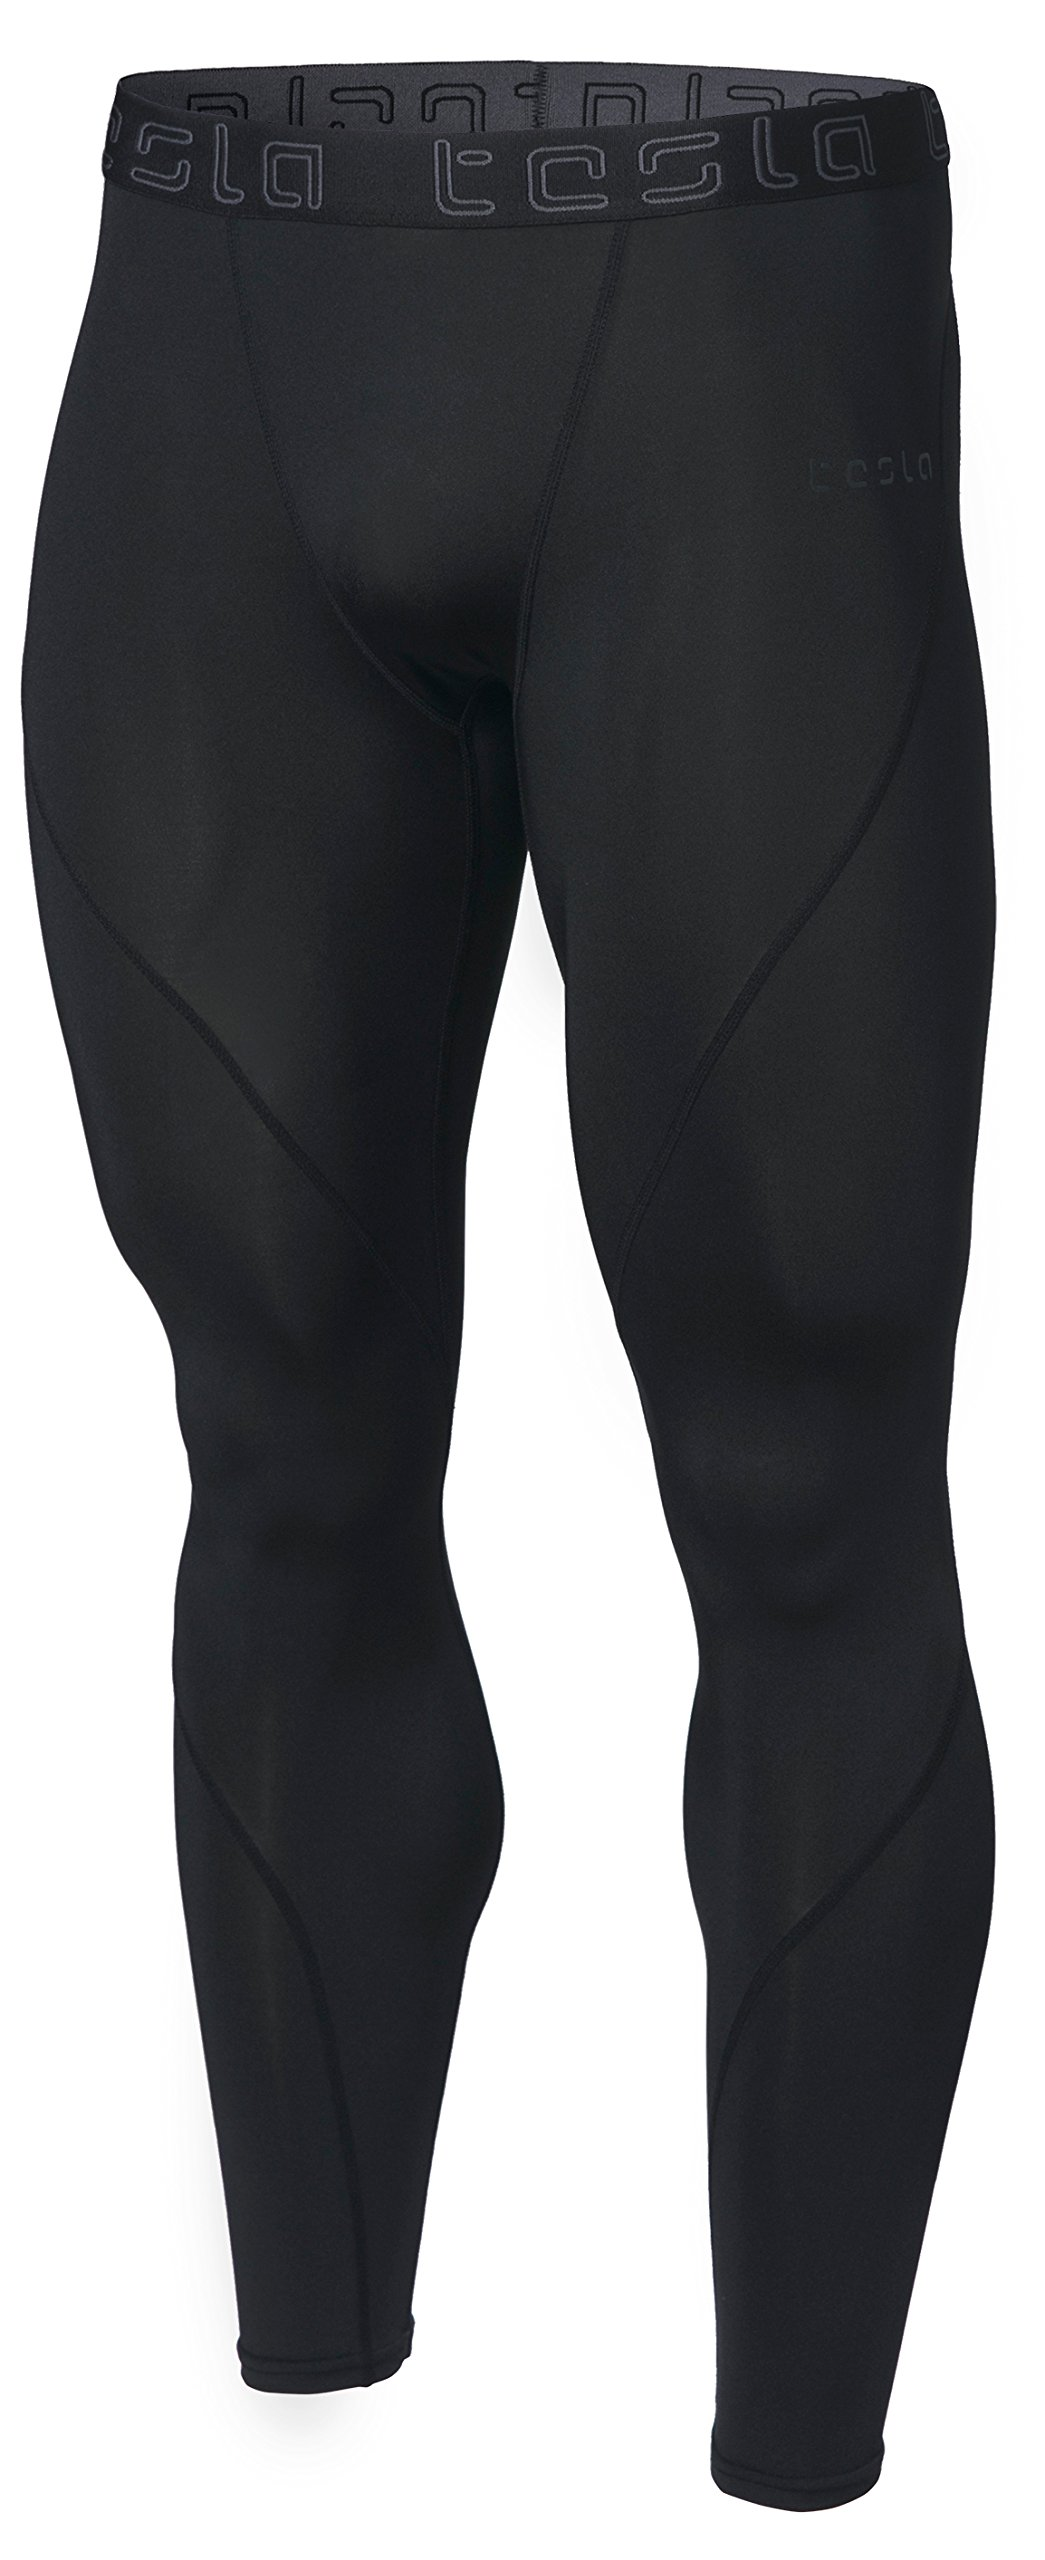 TSLA Men's Compression Pants Running Baselayer Cool Dry Sports Tights, Athletic(mup19) - Black, Large by TSLA